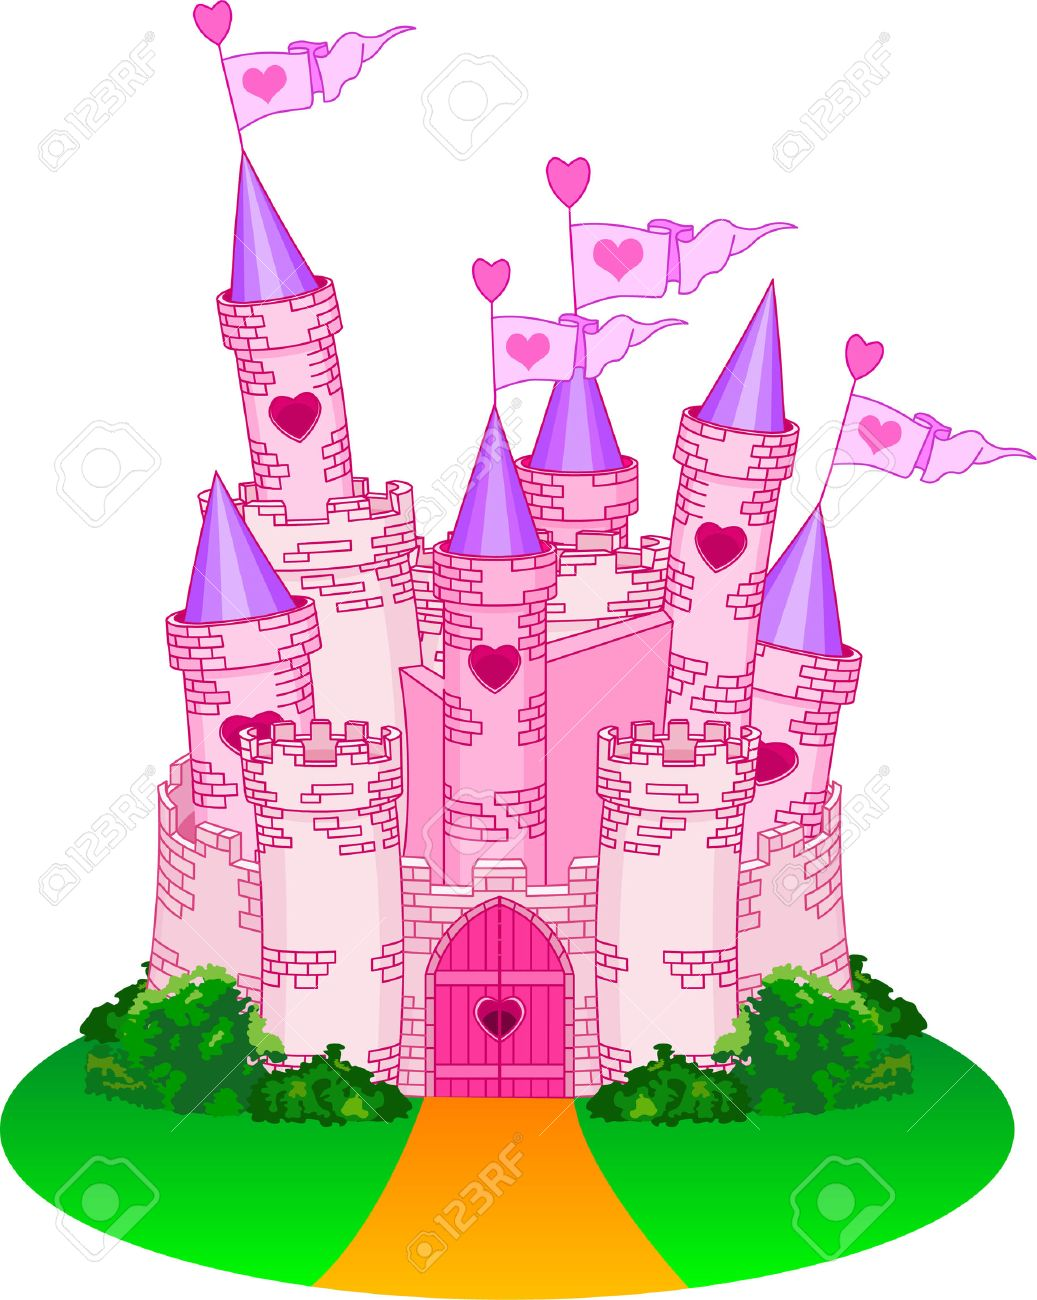 vector illustration of a fairy tale princess castle royalty free